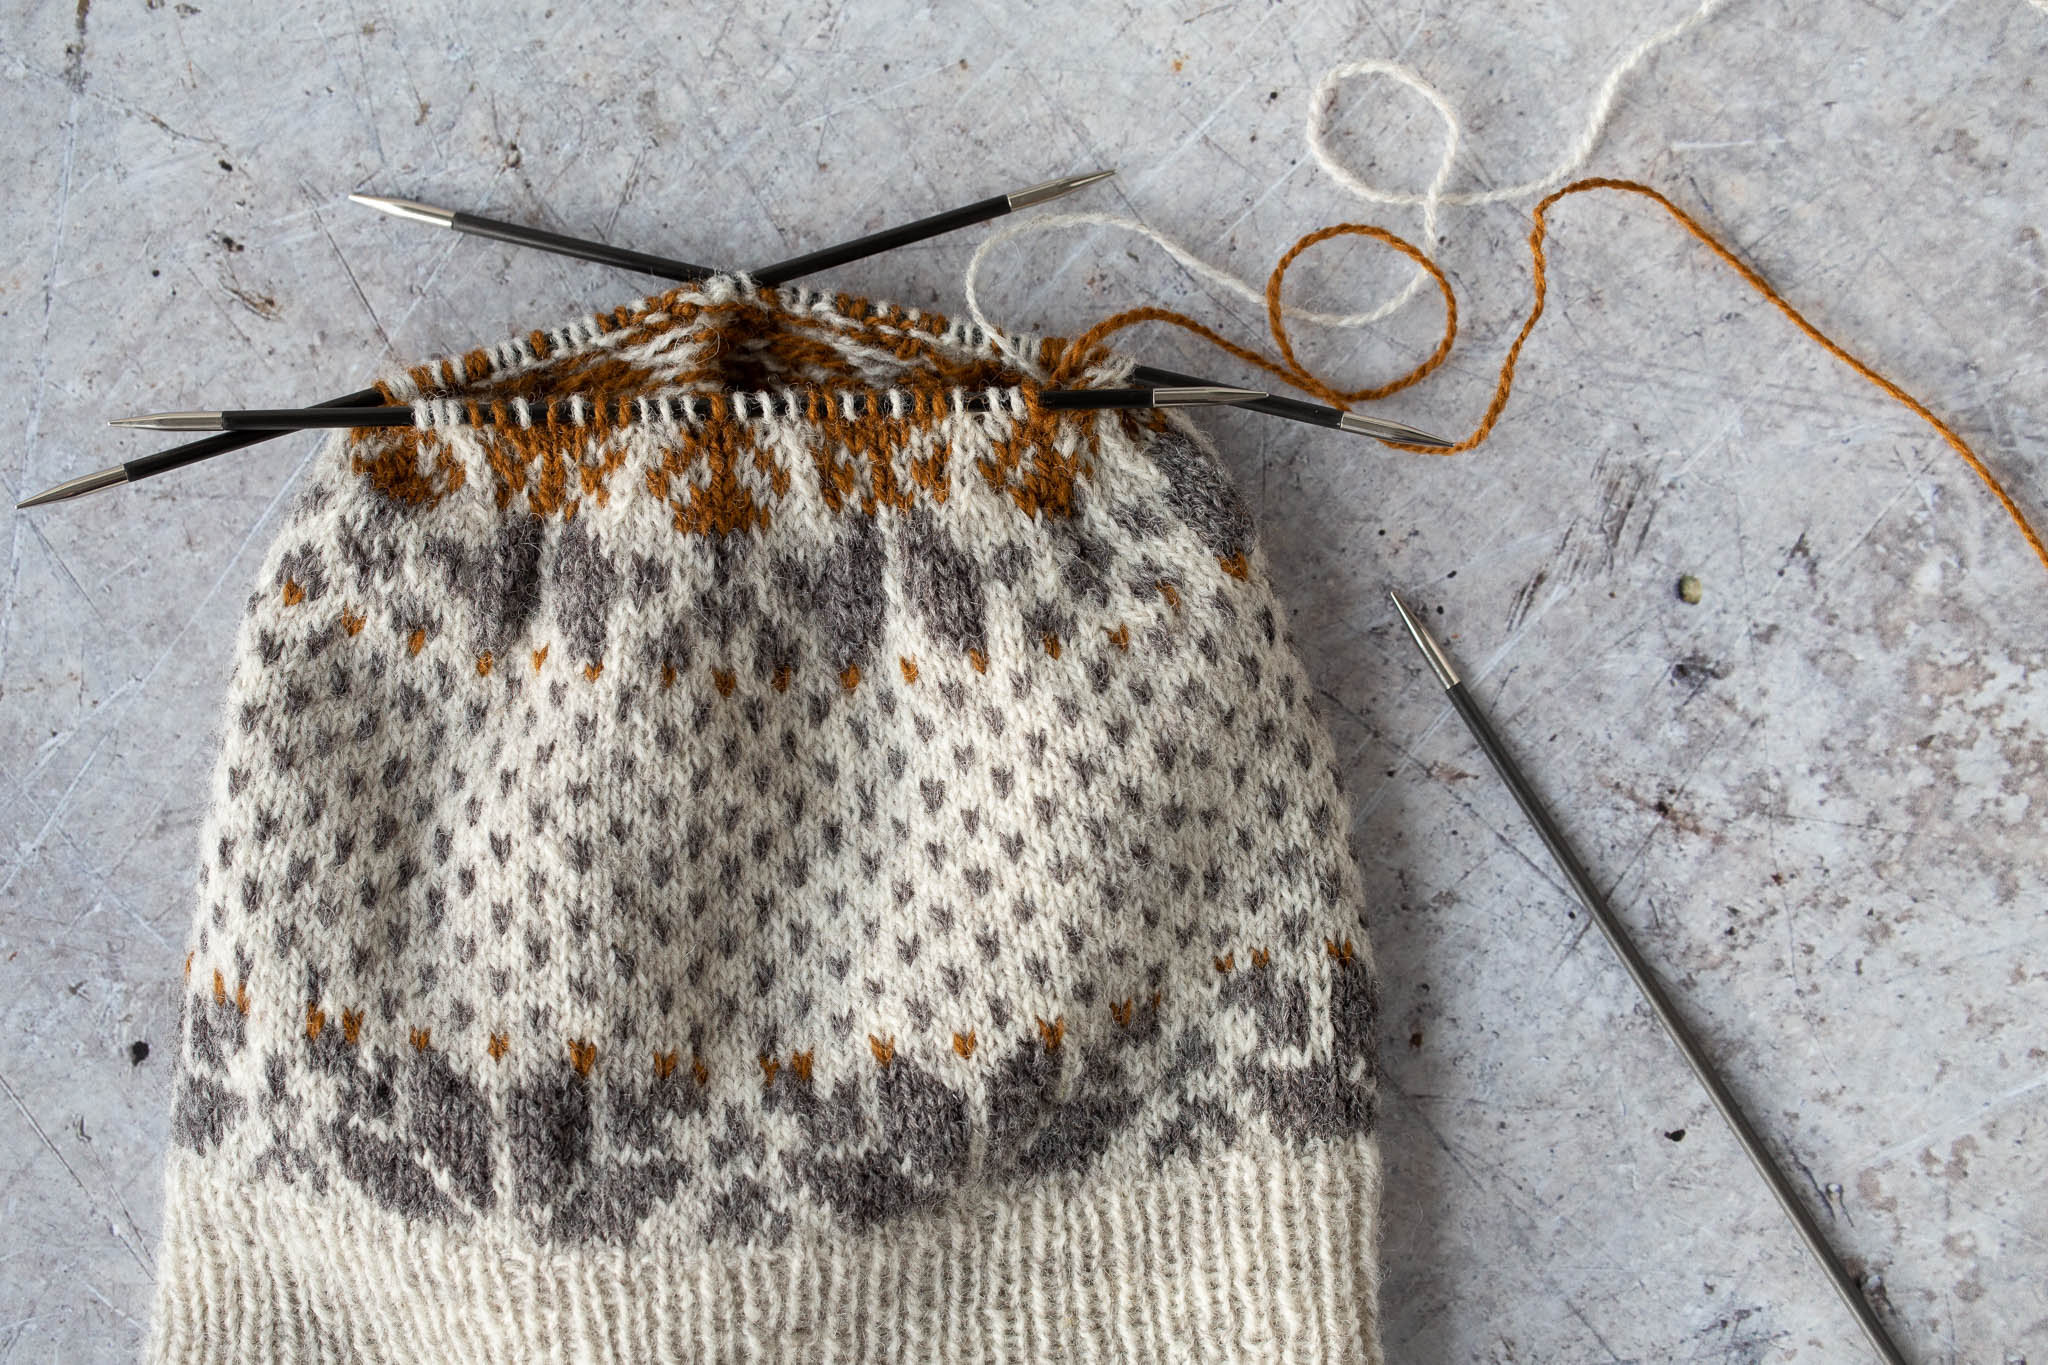 Colourwork hat in progress in beige, grey, and caramel, laid flat on a concrete floor. Stitches are divided over 3 double pointed needles.